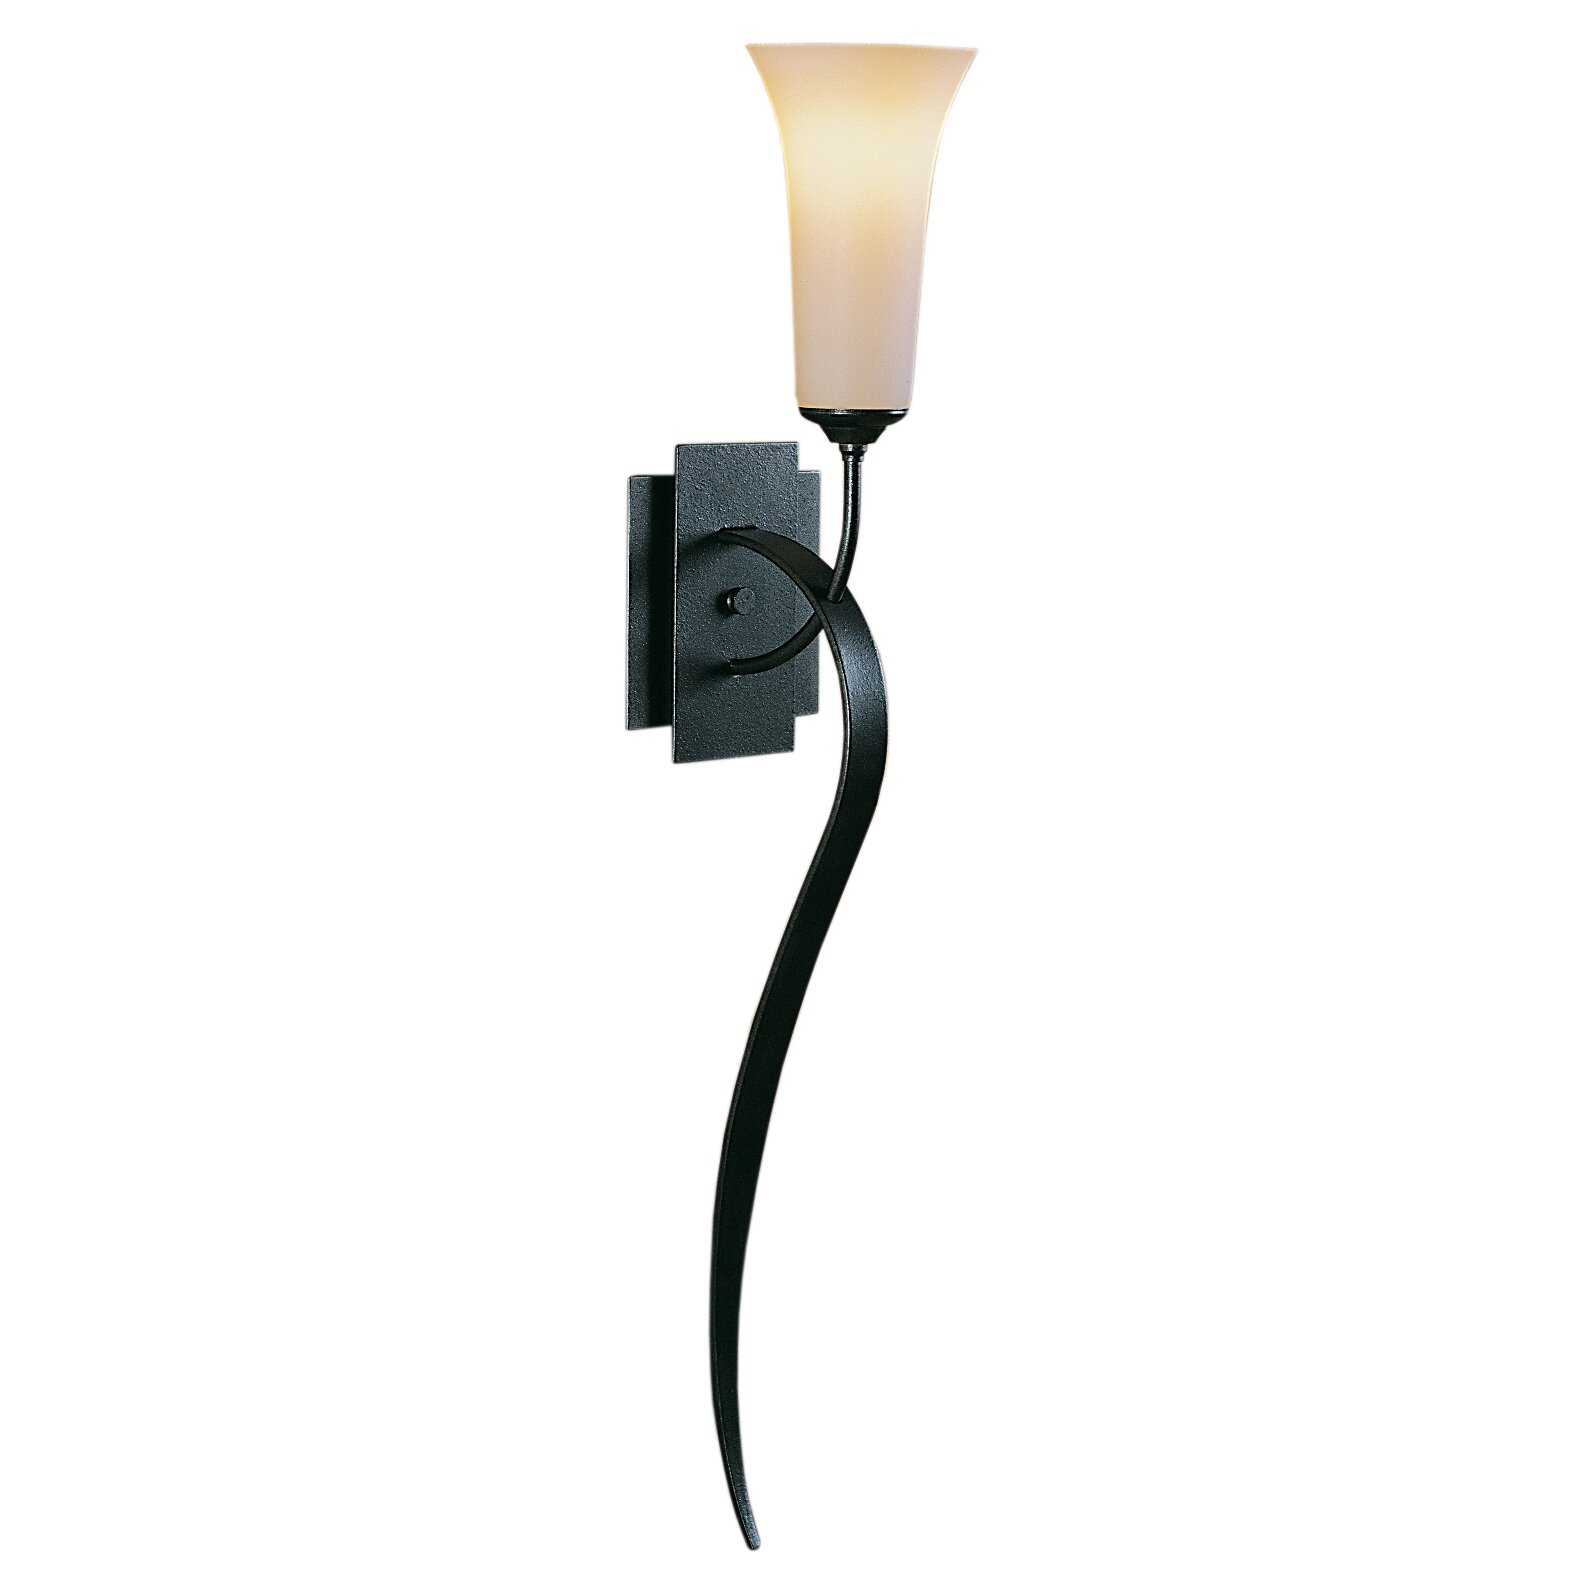 Hubbardton Forge Sweeping Taper: Hubbardton Forge Sweeping Taper 1-Light Wall Sconce